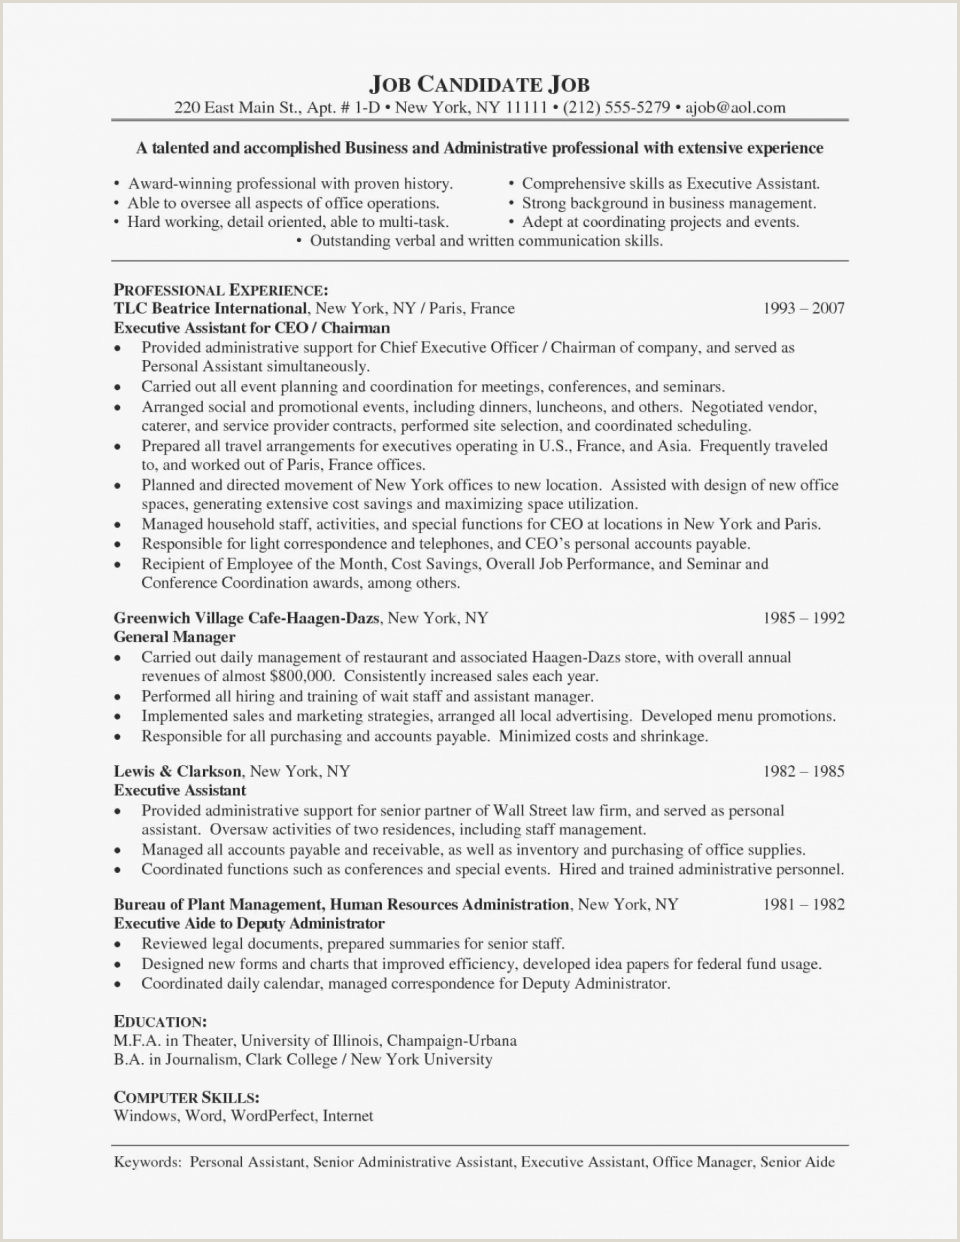 Advertising Account Executive Resume 100 Free Resume Samples Examples at Resumestime Executive Cv